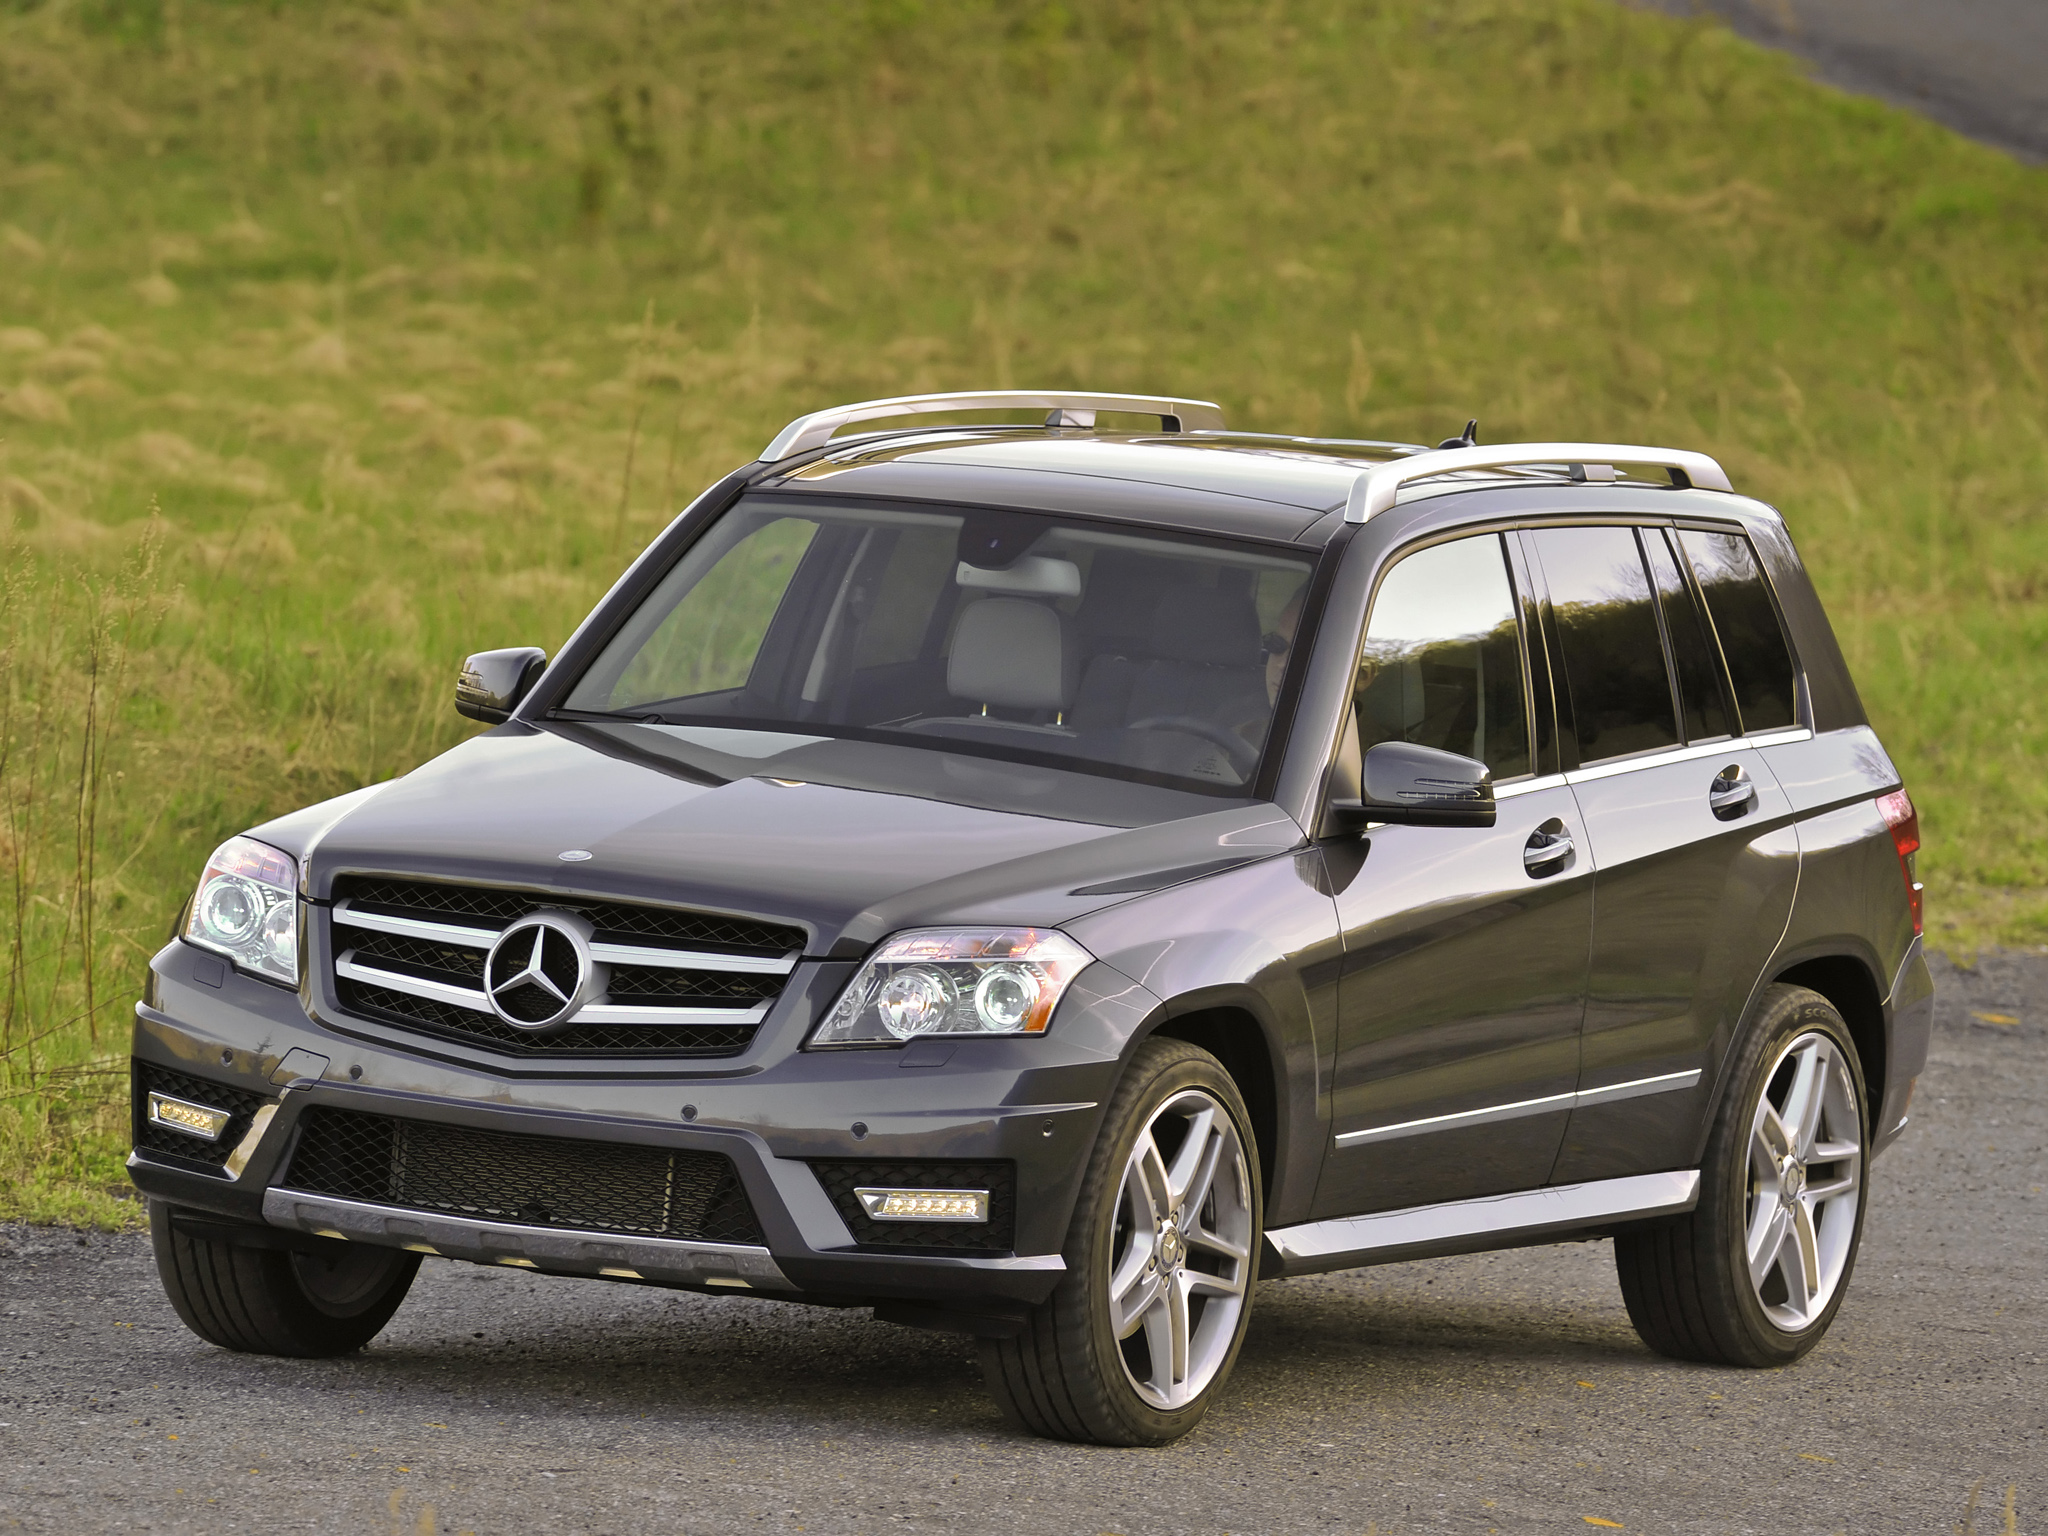 Mercedes benz glk amg picture 90367 mercedes benz for Mercedes benz glk350 amg